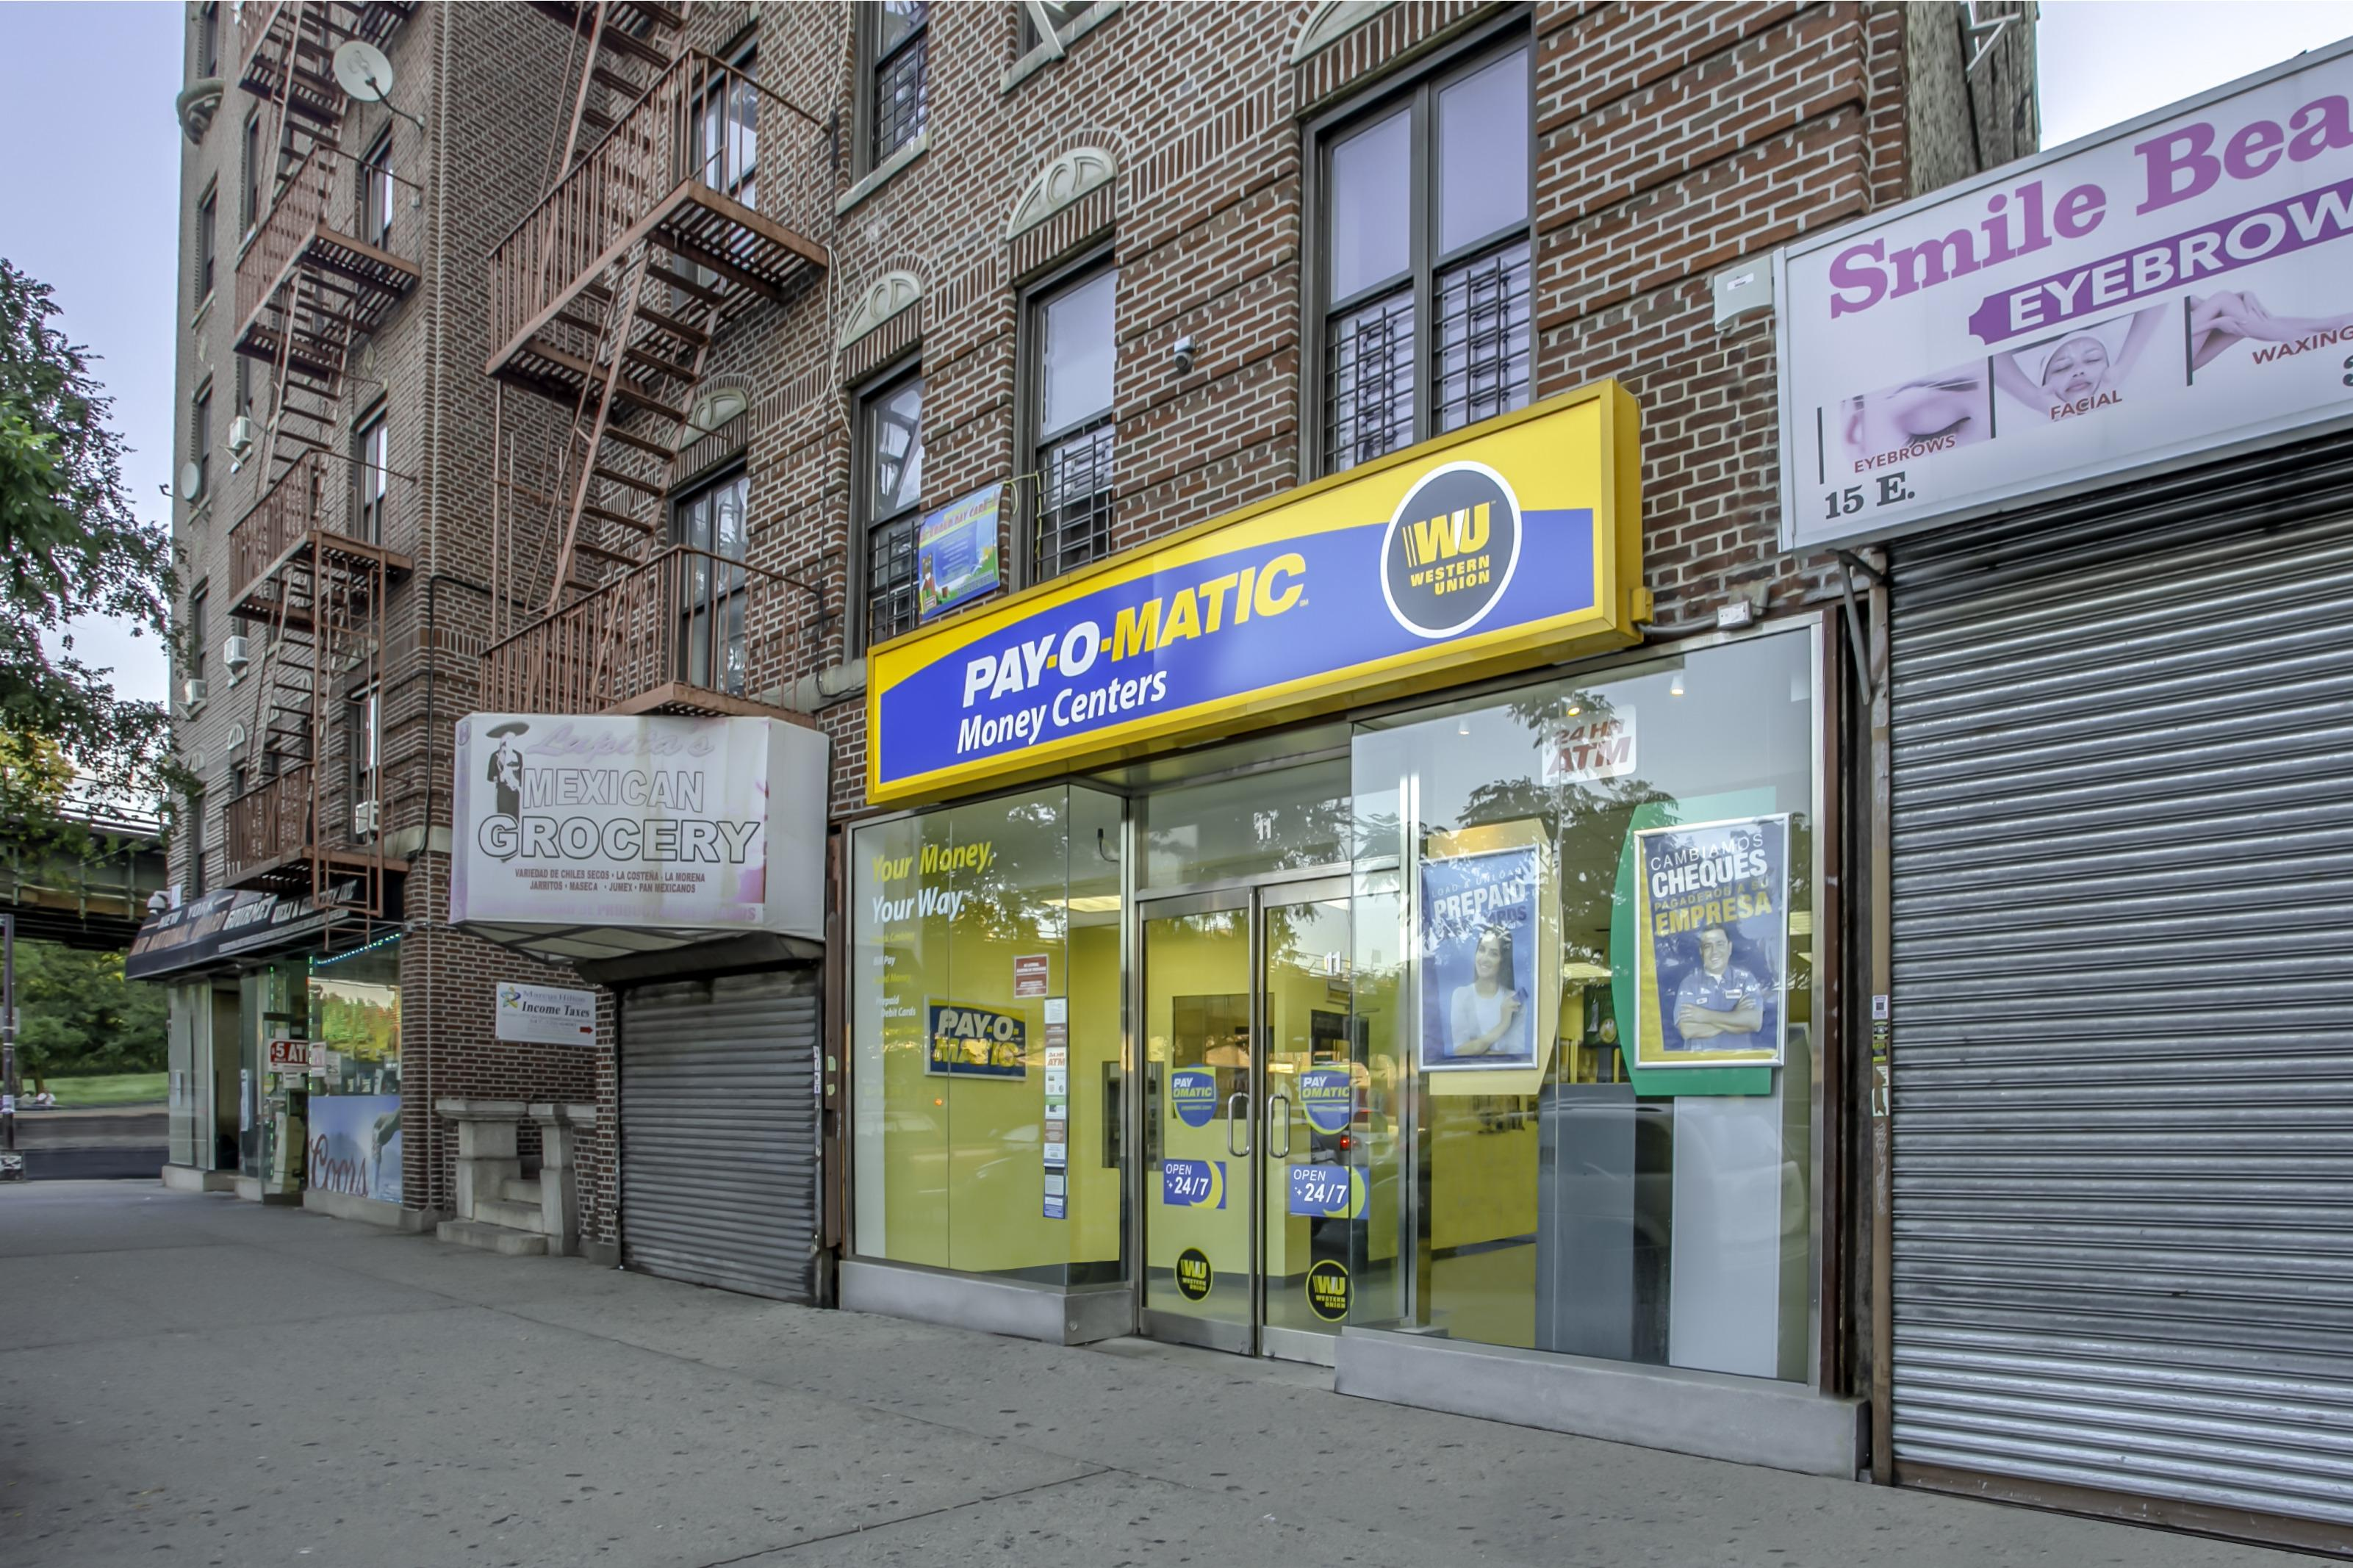 Exterior view from sidewalk of PAYOMATIC store located at 11 East Gunhill Road Bronx, NY 10467